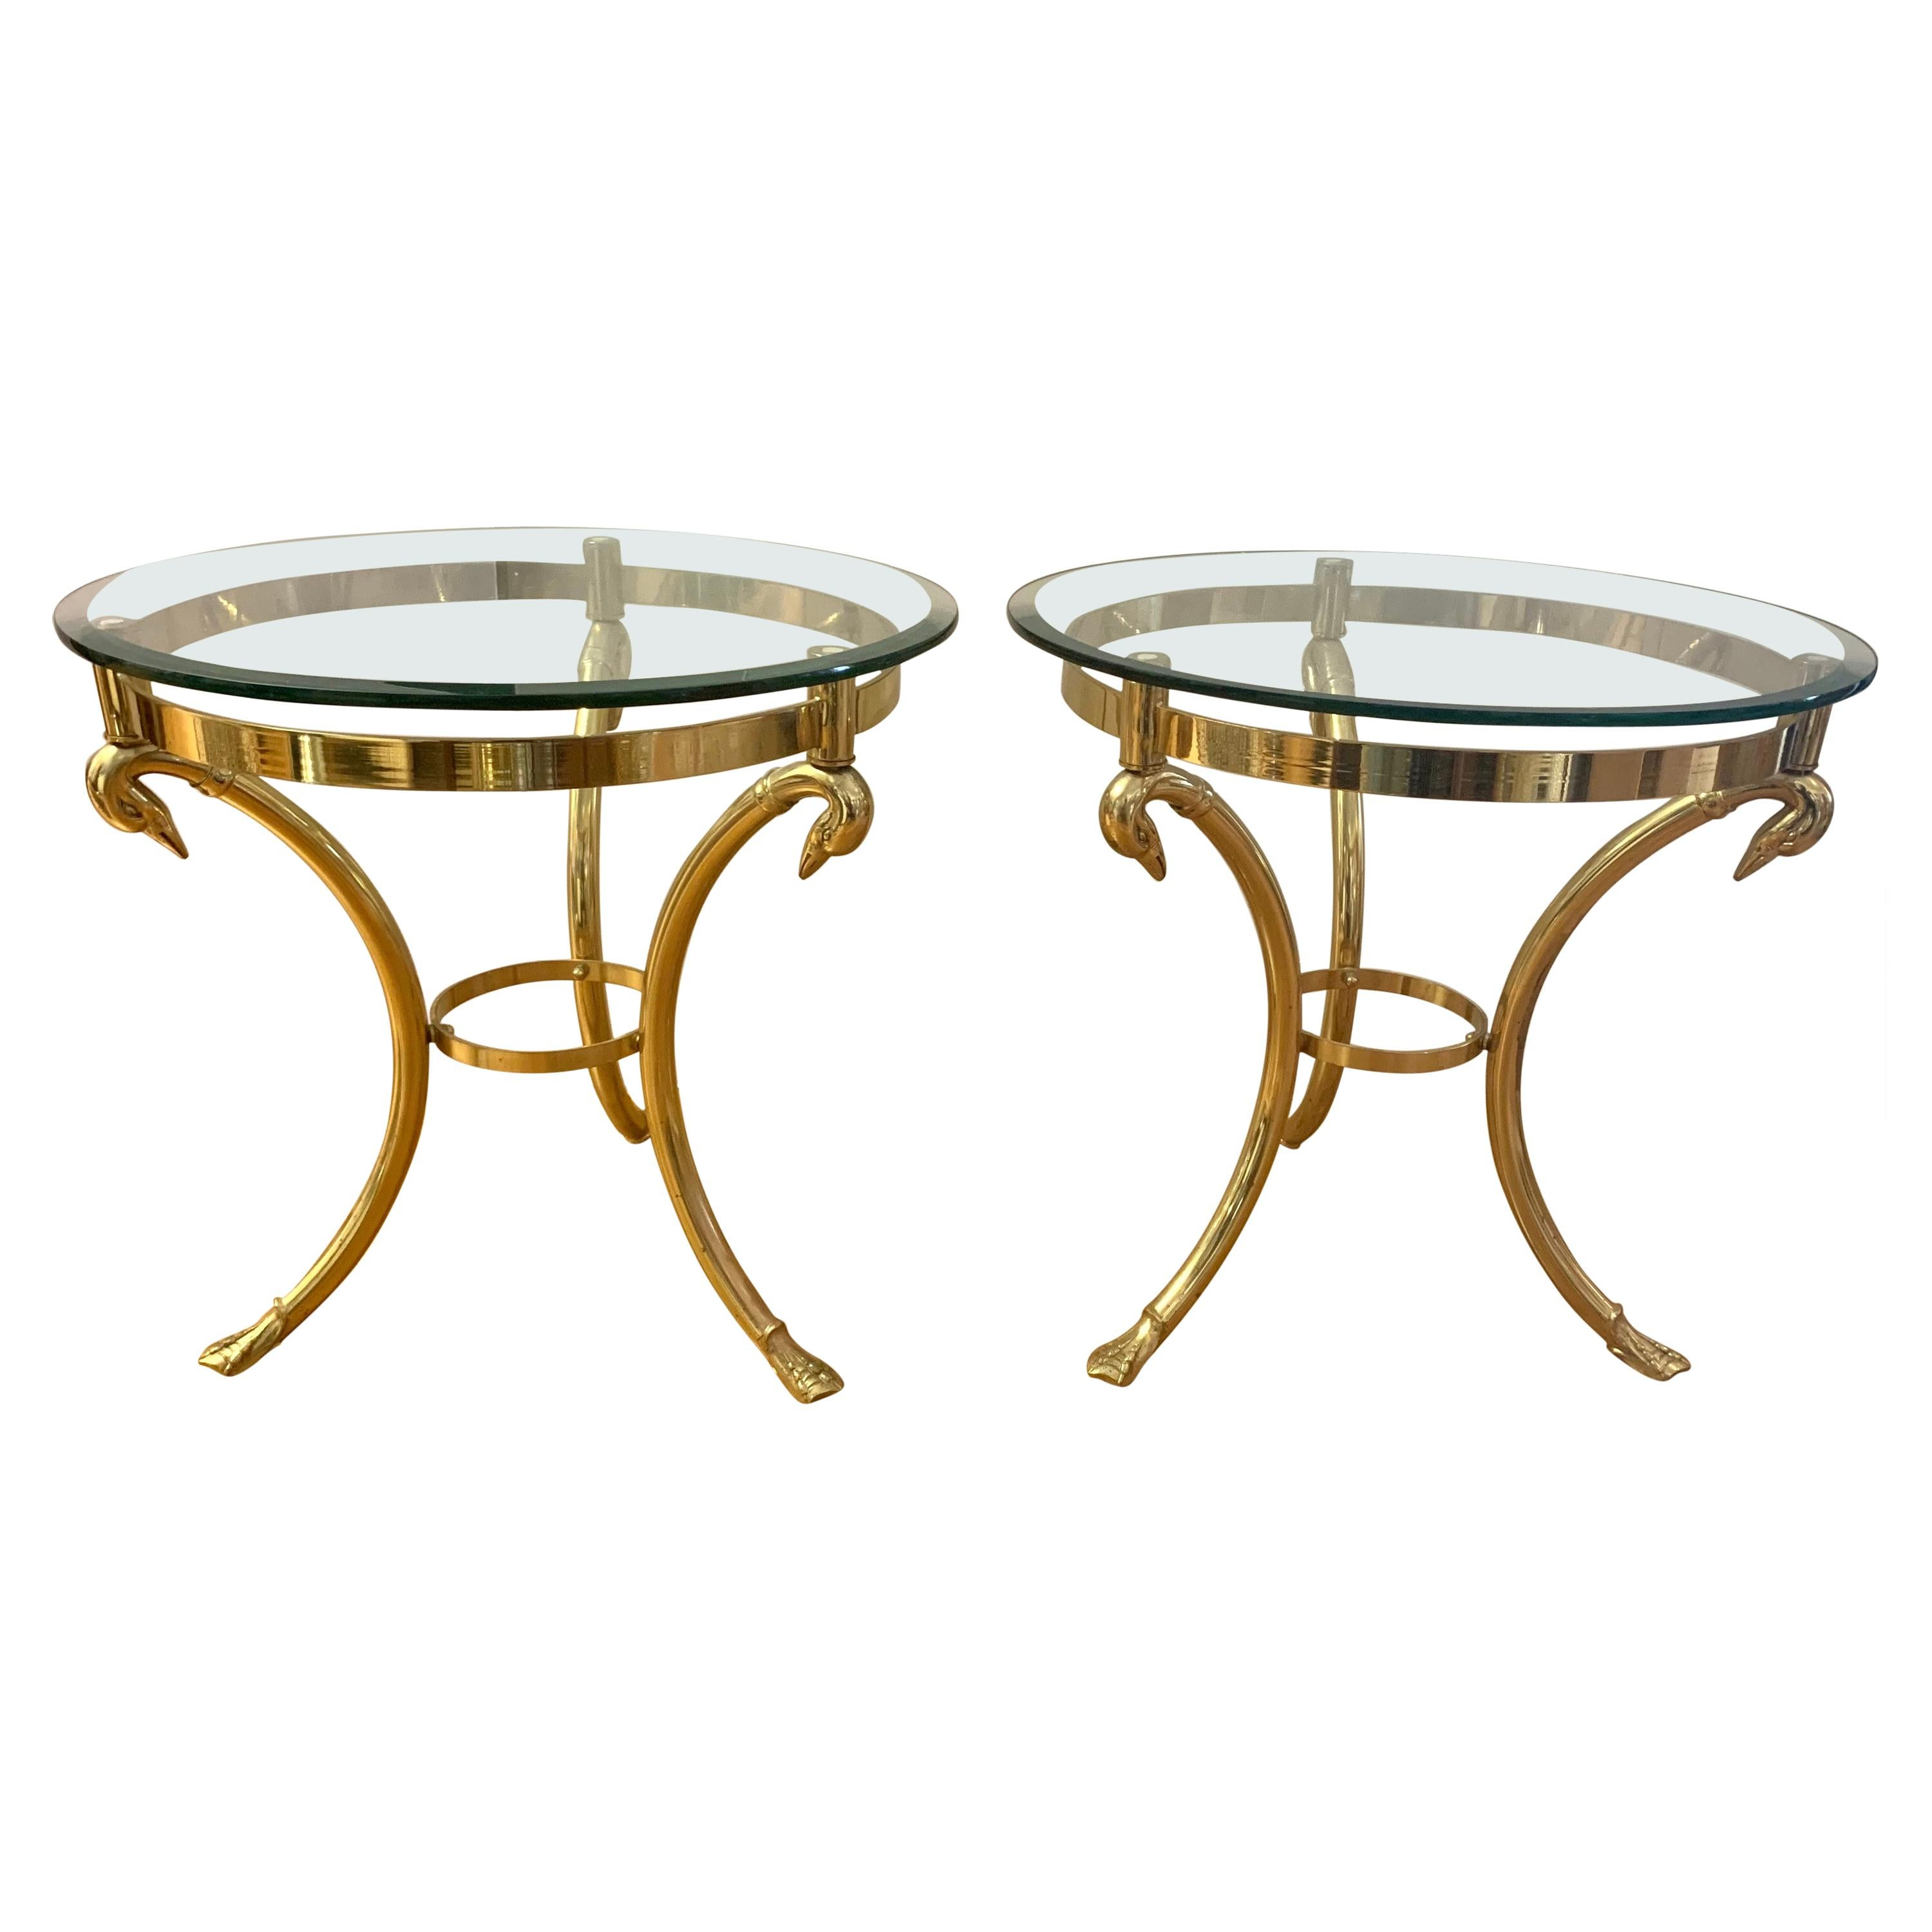 Pair Maison Jansen Neoclassical Brass and Glass End Tables Swan Heads and Feet